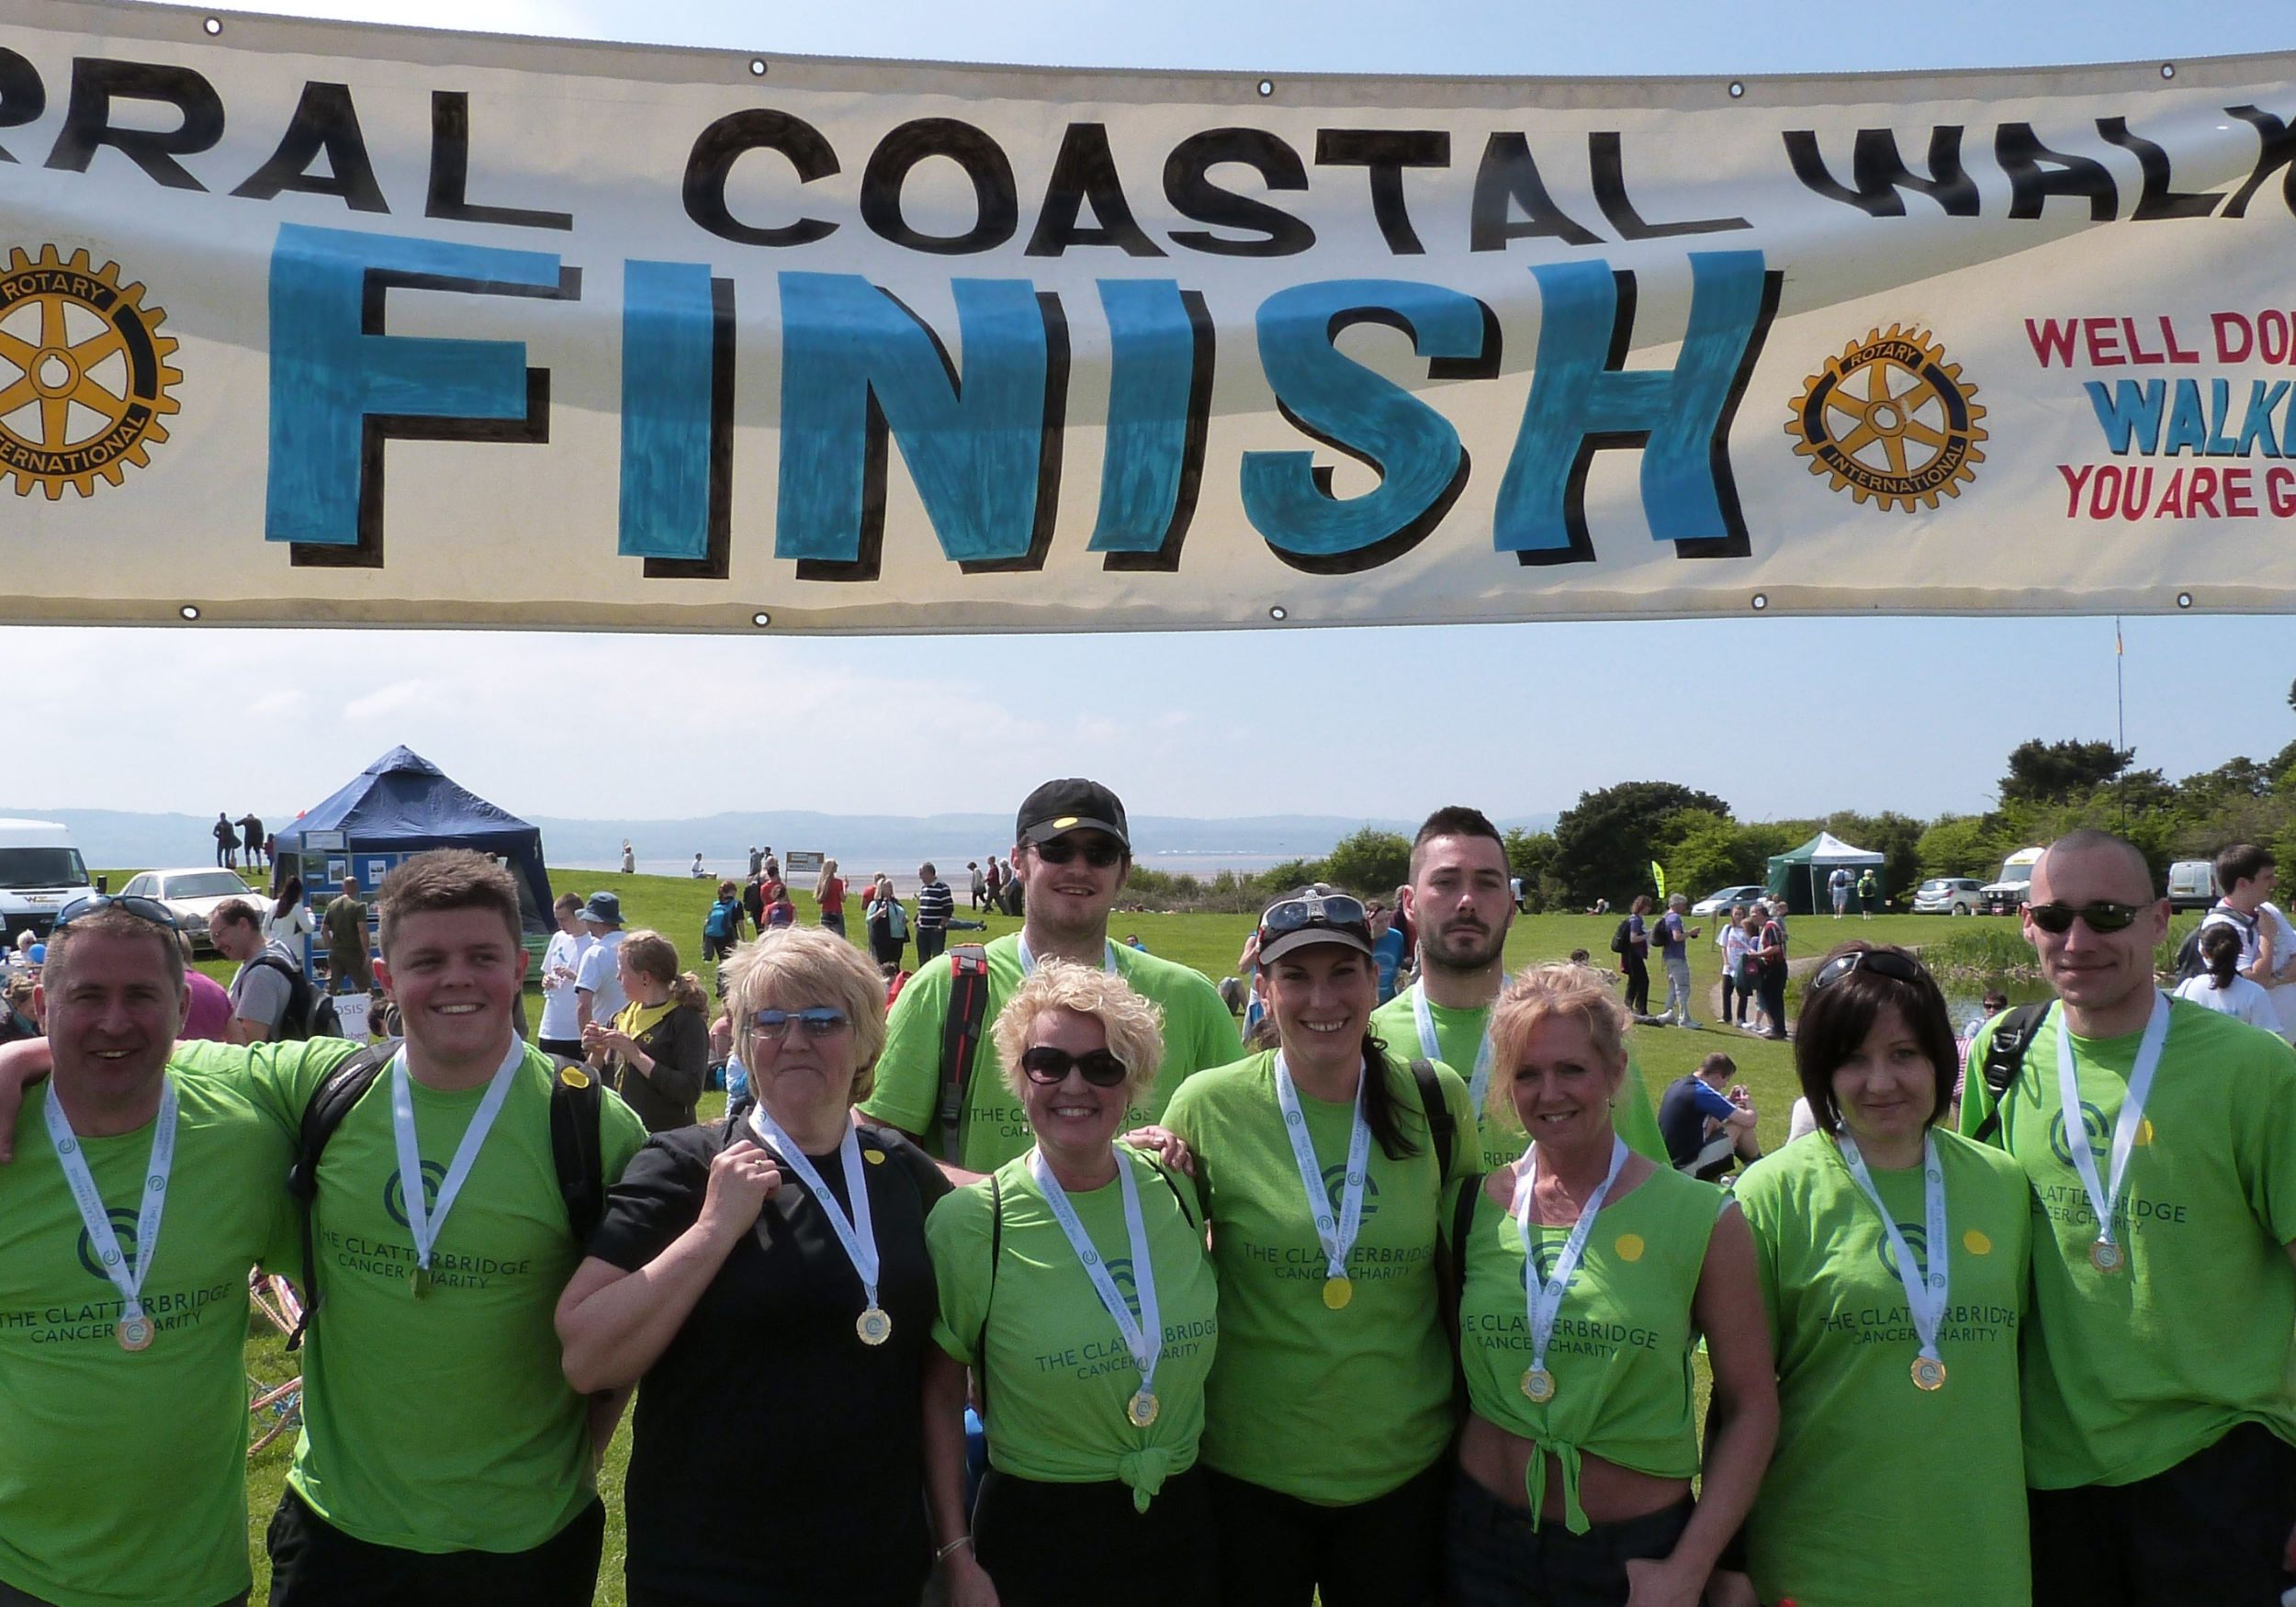 Wirral Coastal Walk Cover Photo.png